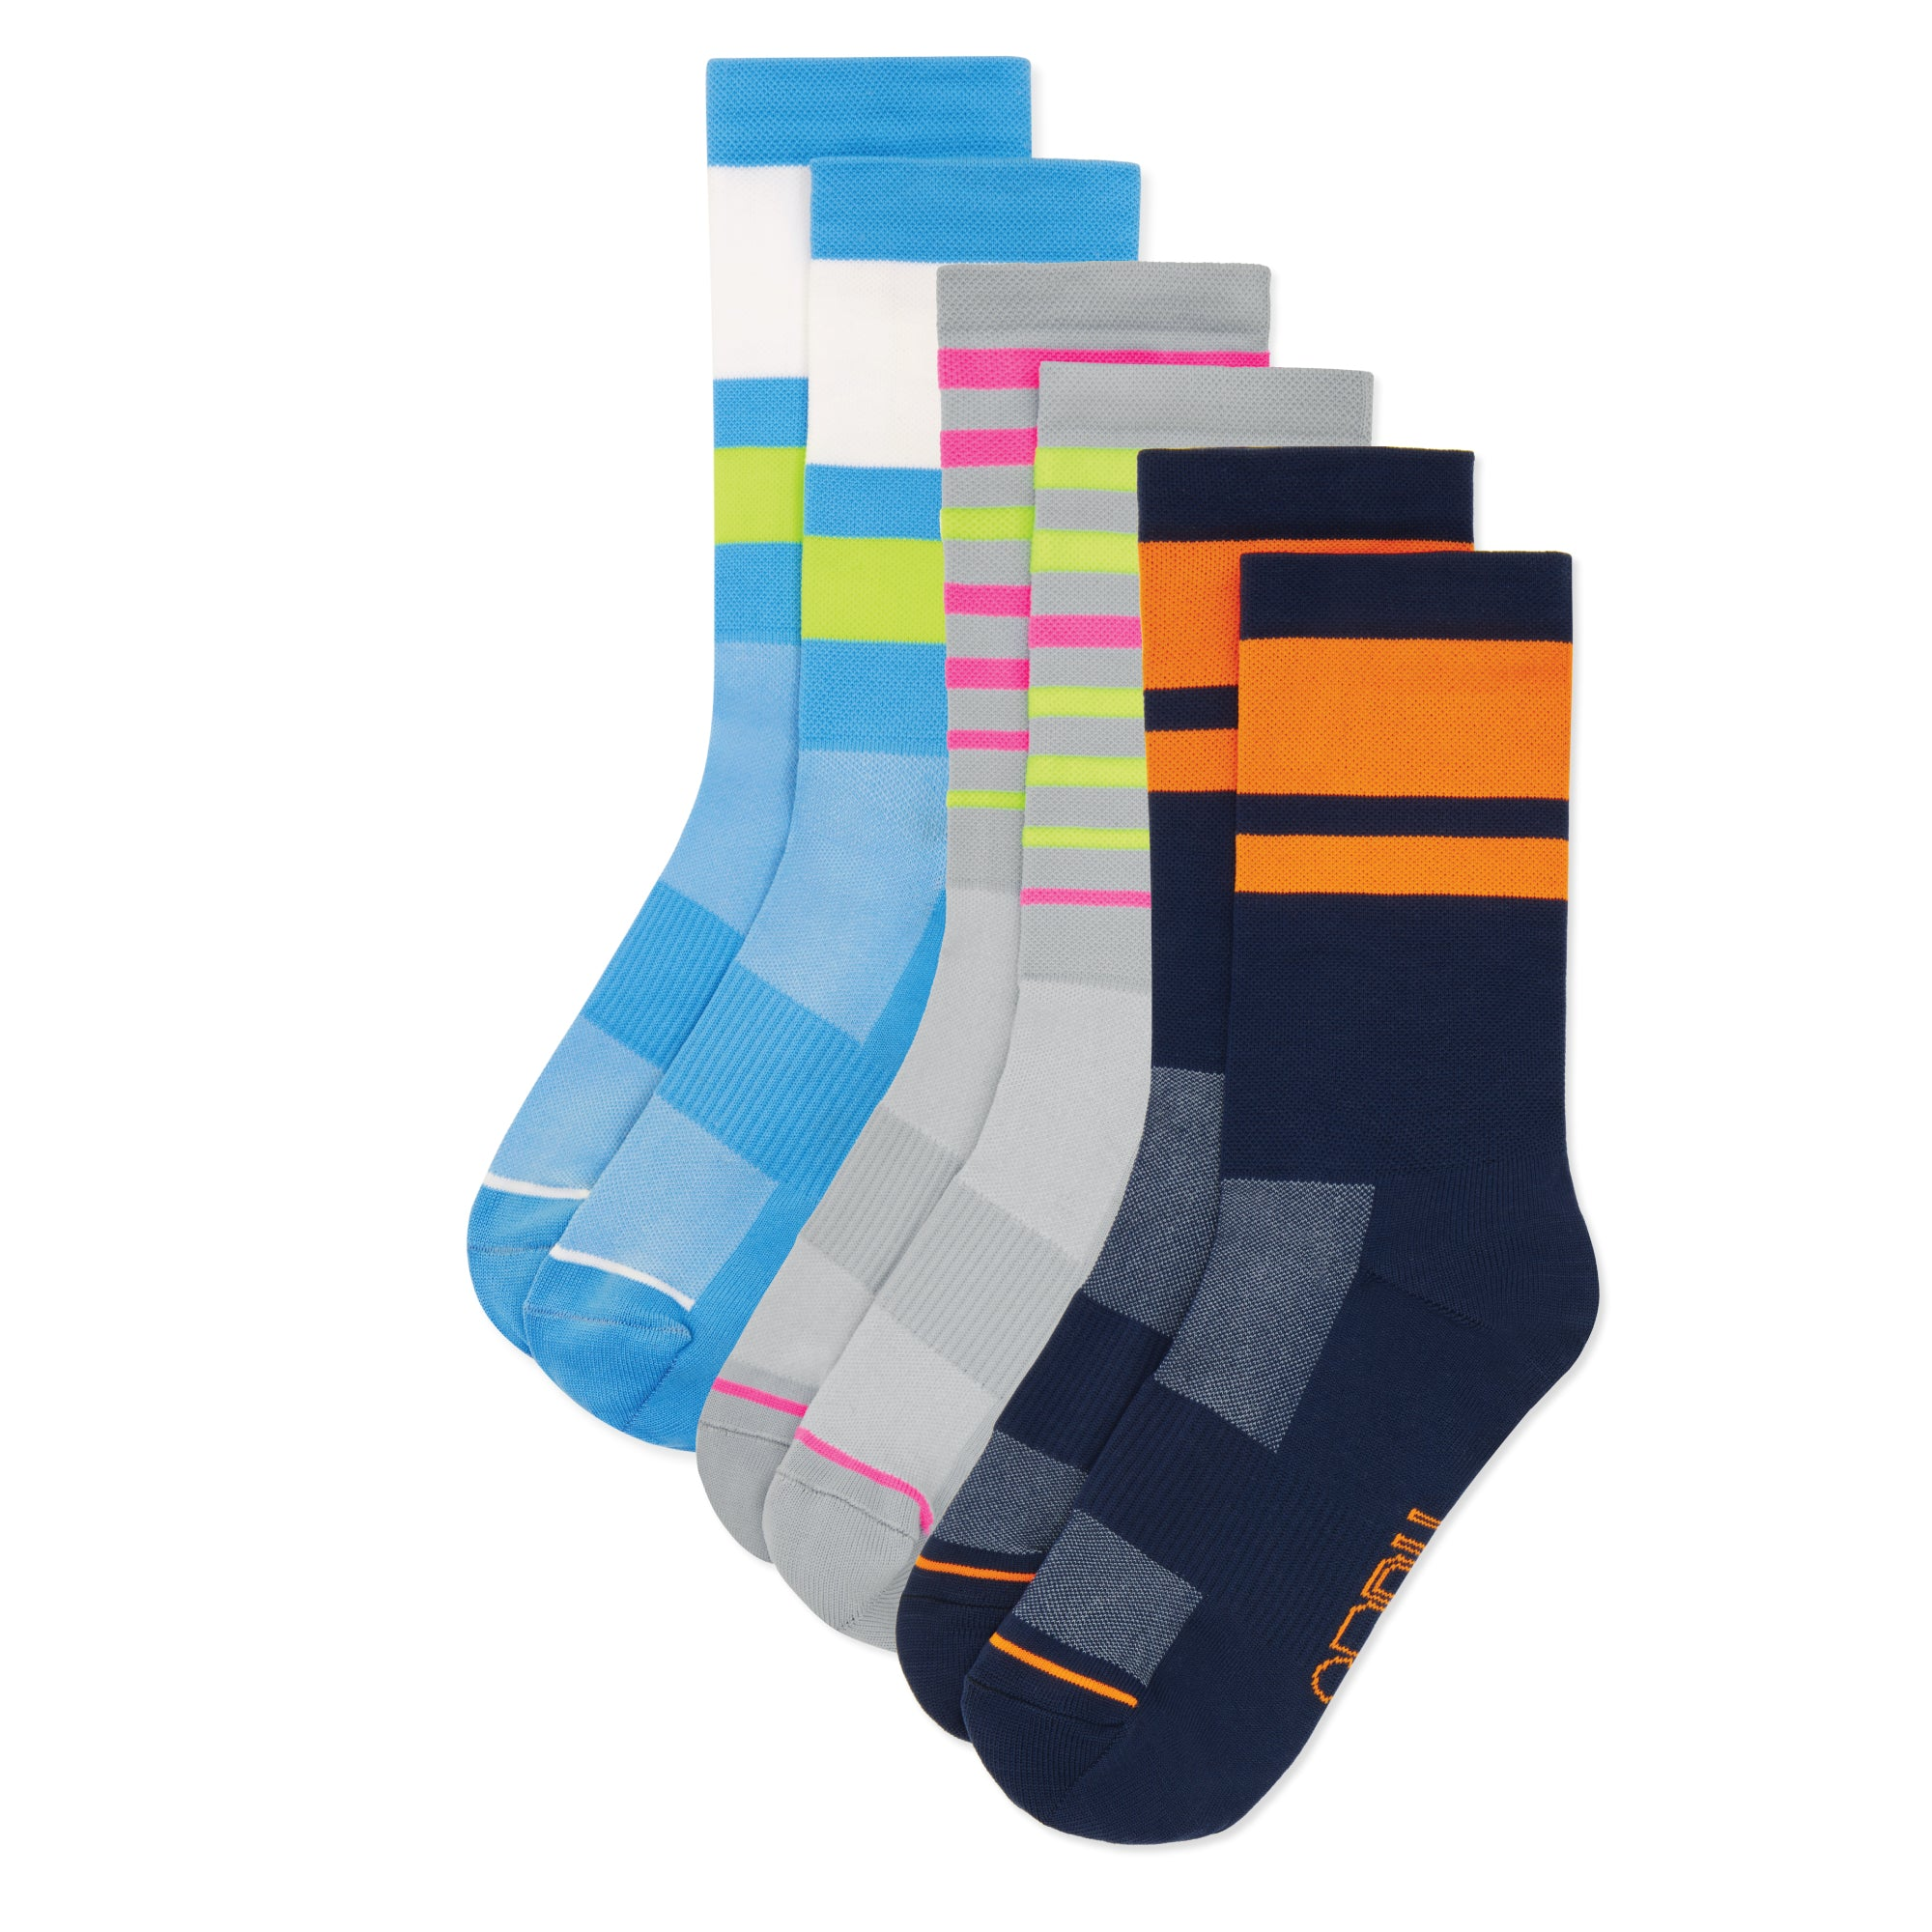 3 Pack of cycling socks